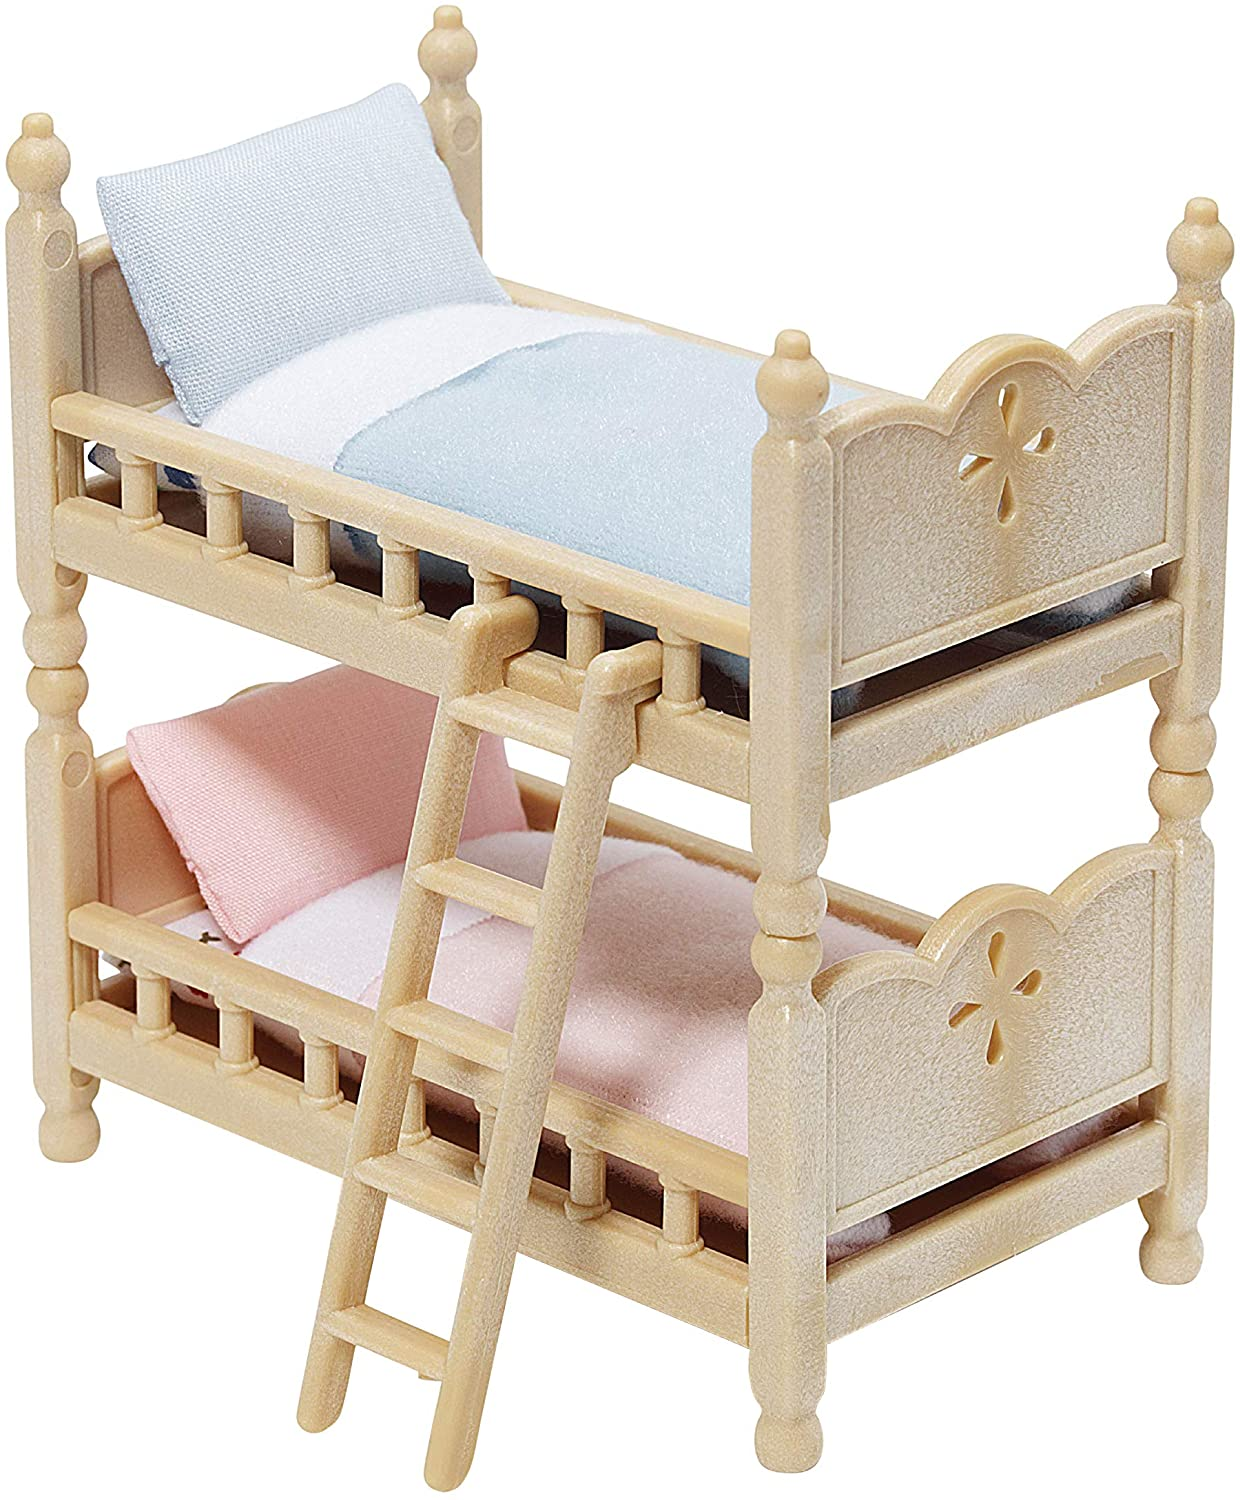 Amazon Com Calico Critters Doll House Furniture And Decor Bunk Beds Toys Games